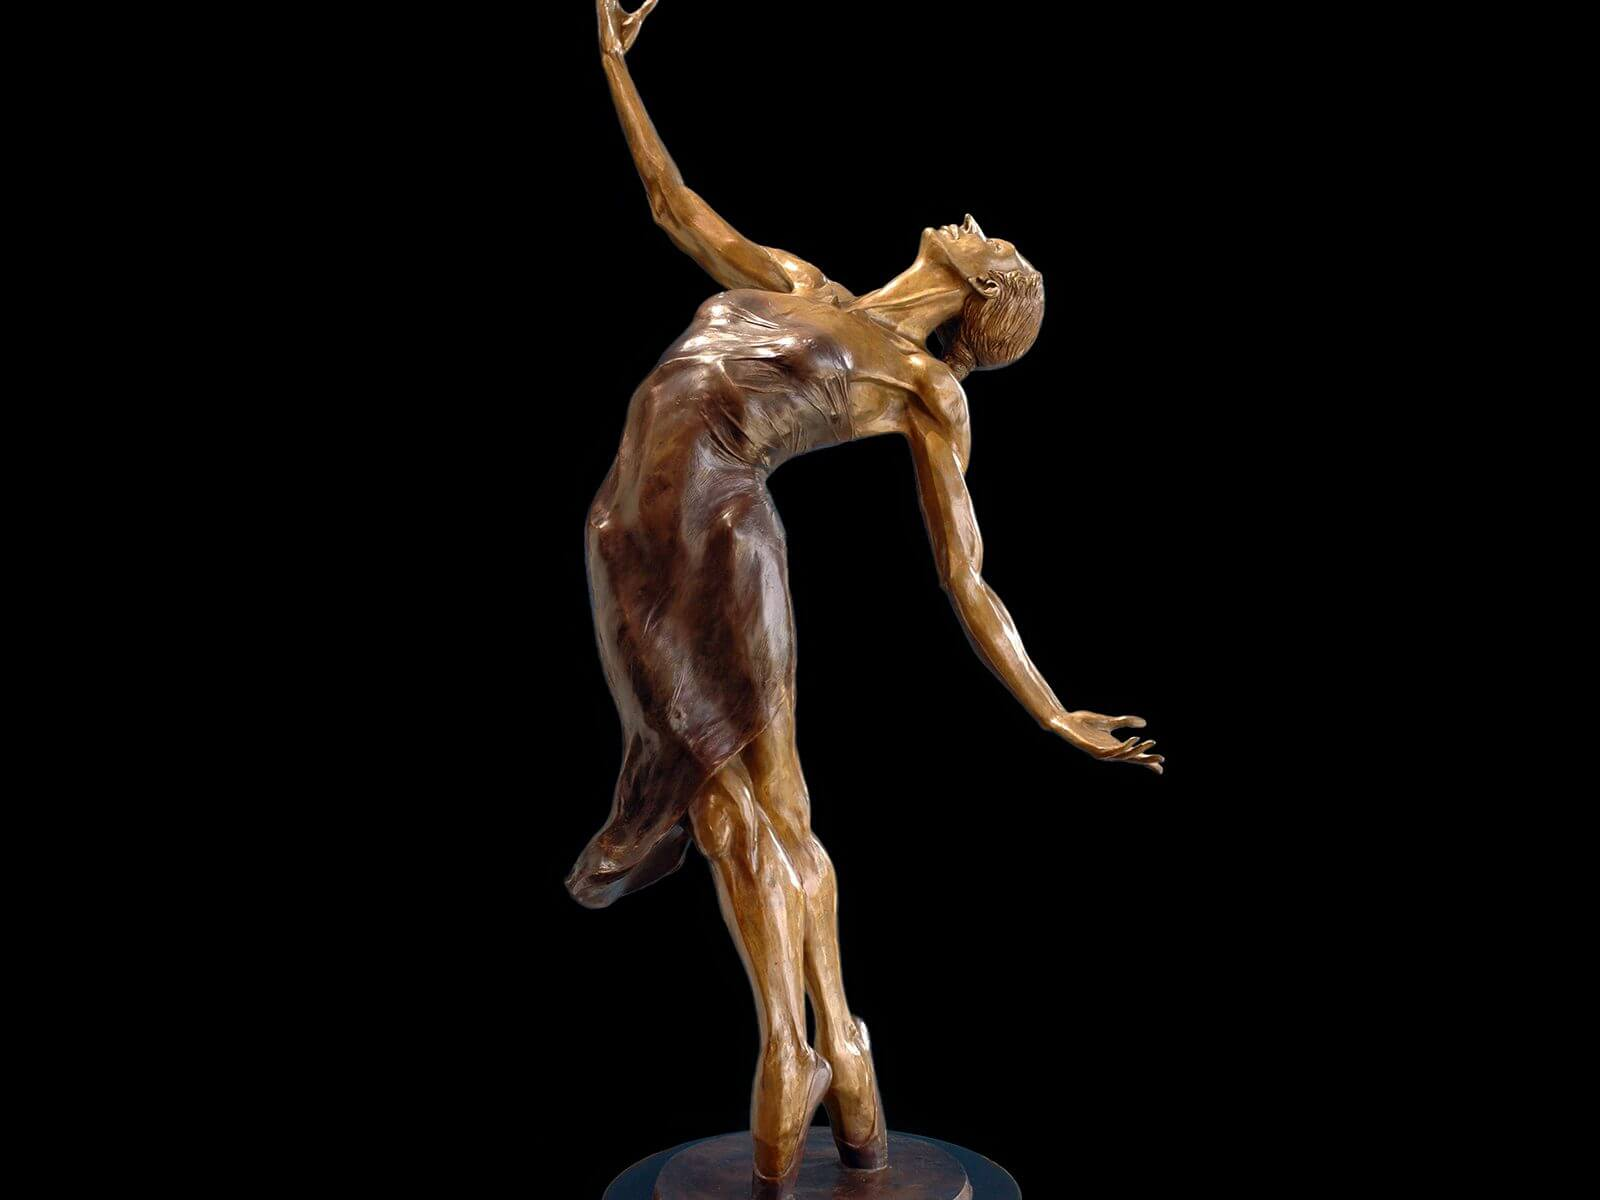 Pleiades a half life size female figurative bronze ballet dancer by sculptor Andrew DeVries